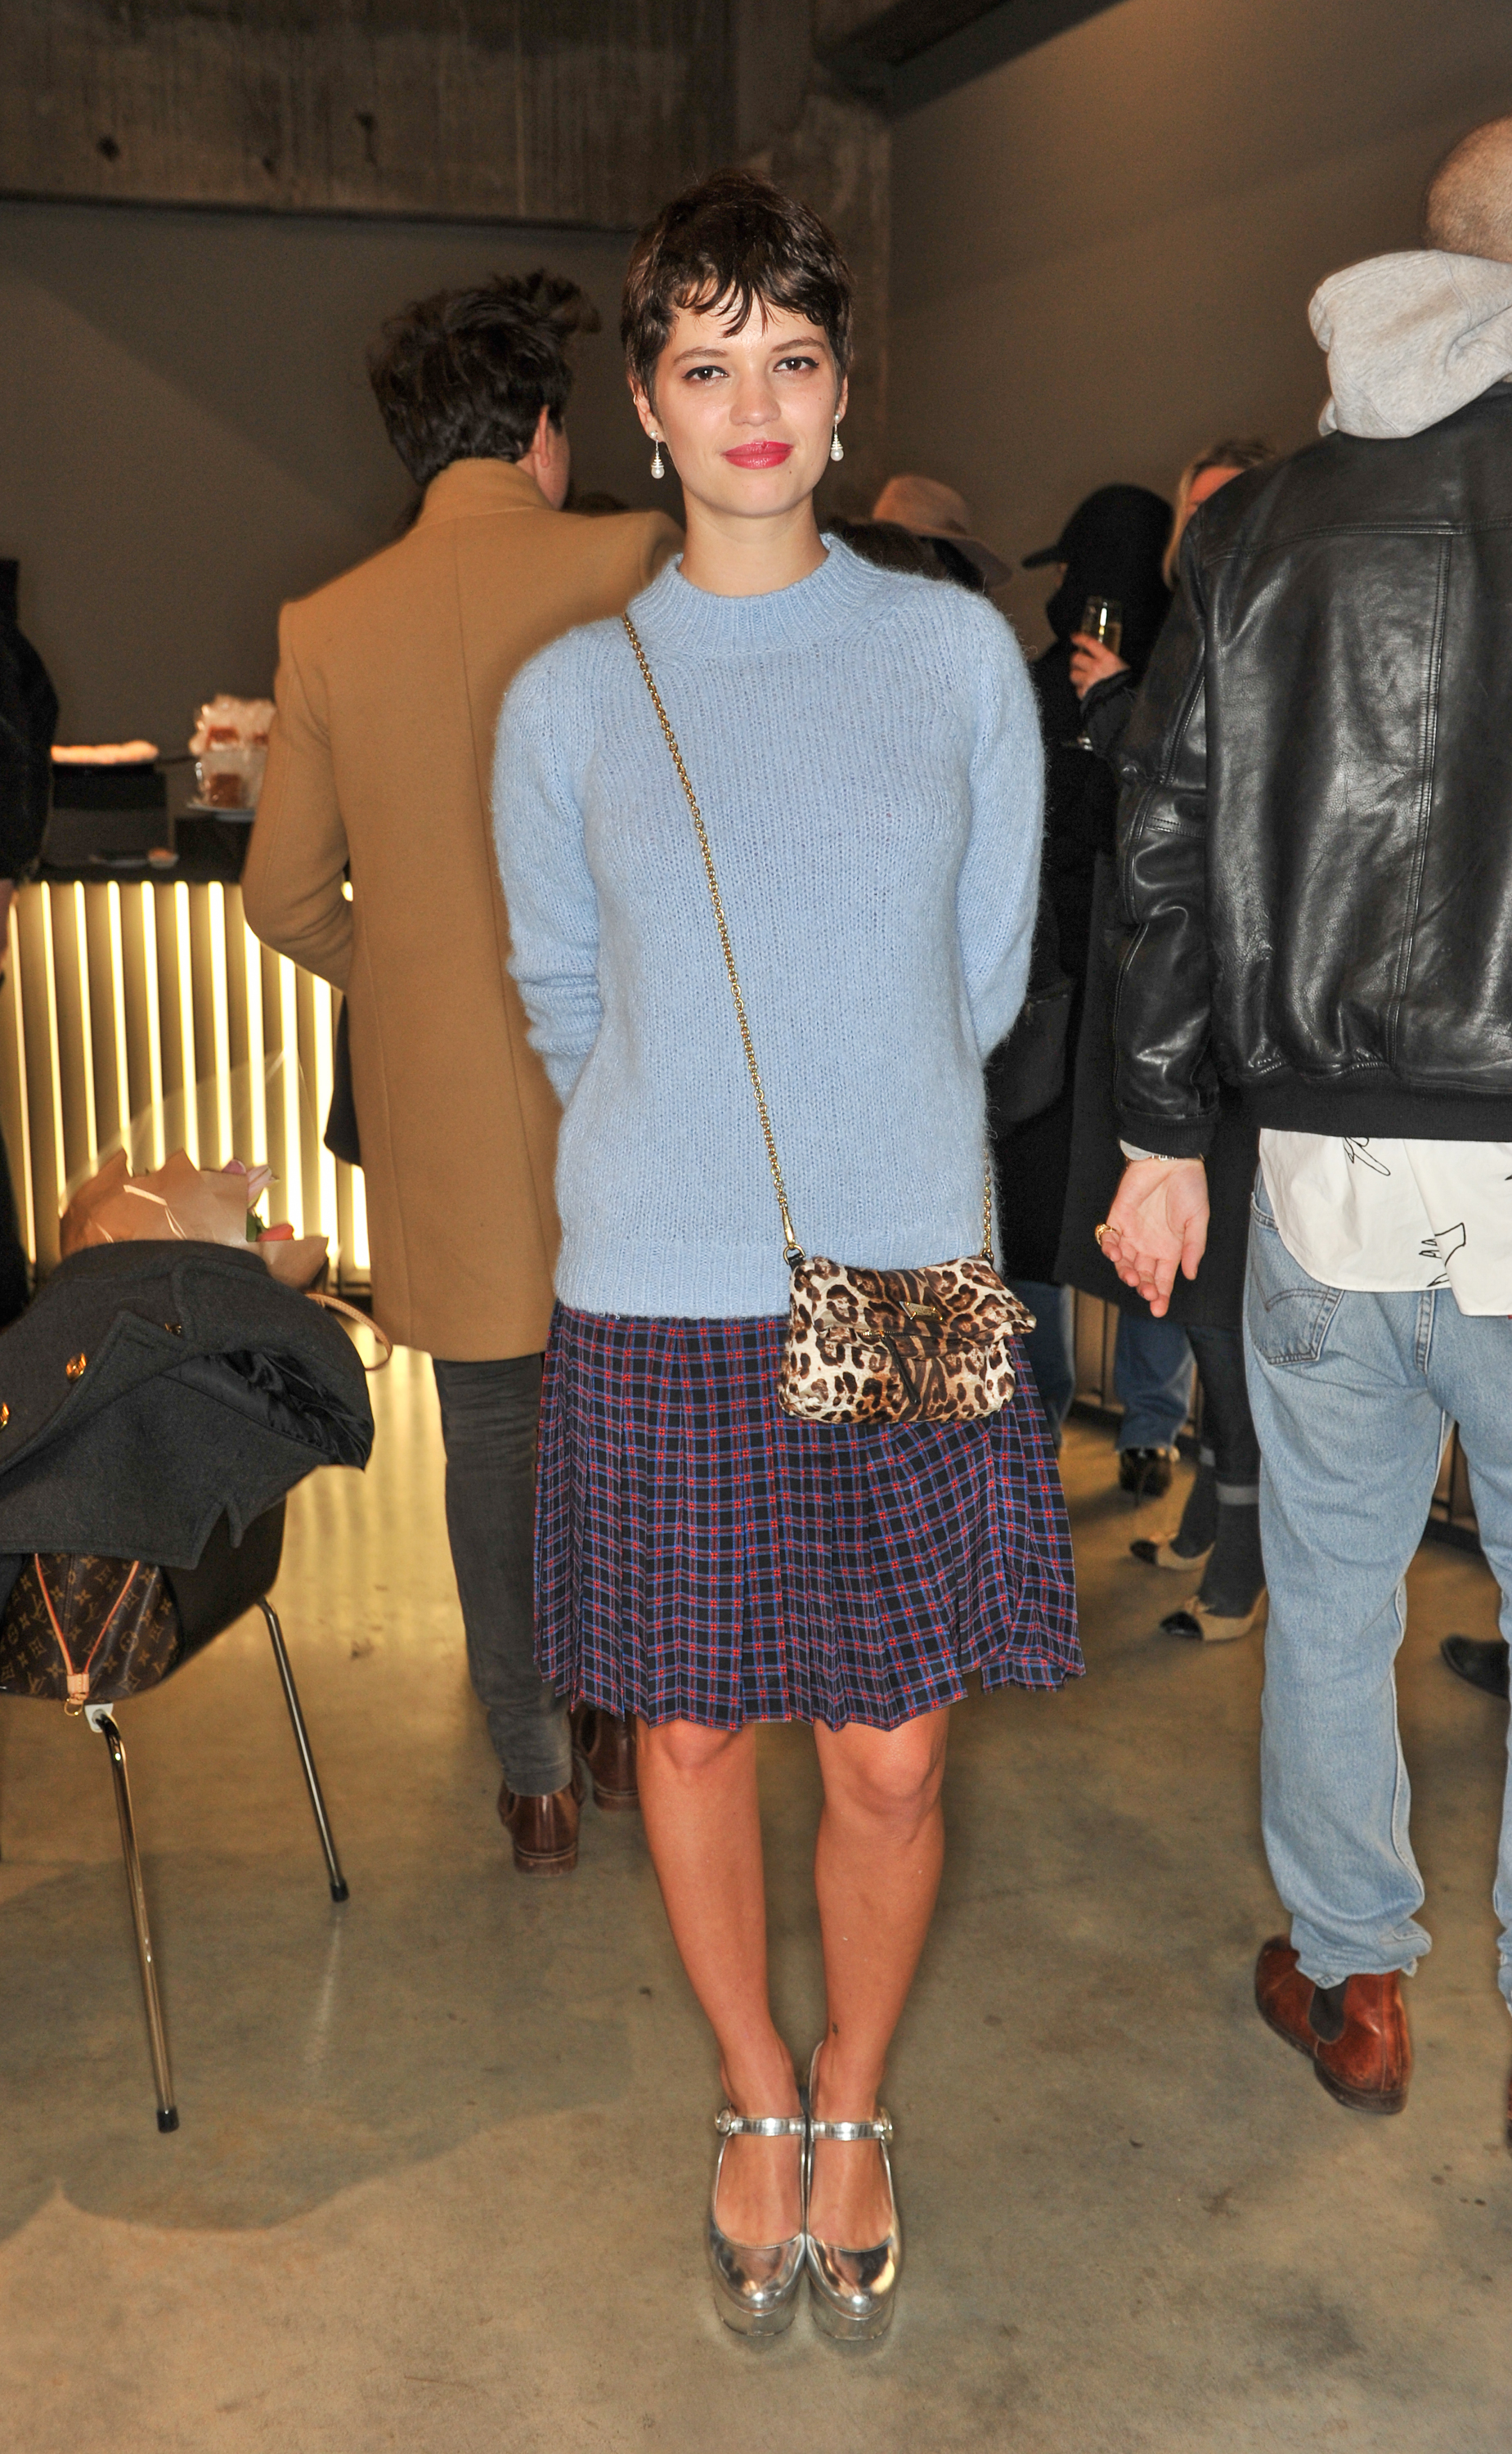 Pixie Geldof at the Fashion East Fall 2013 show in London.